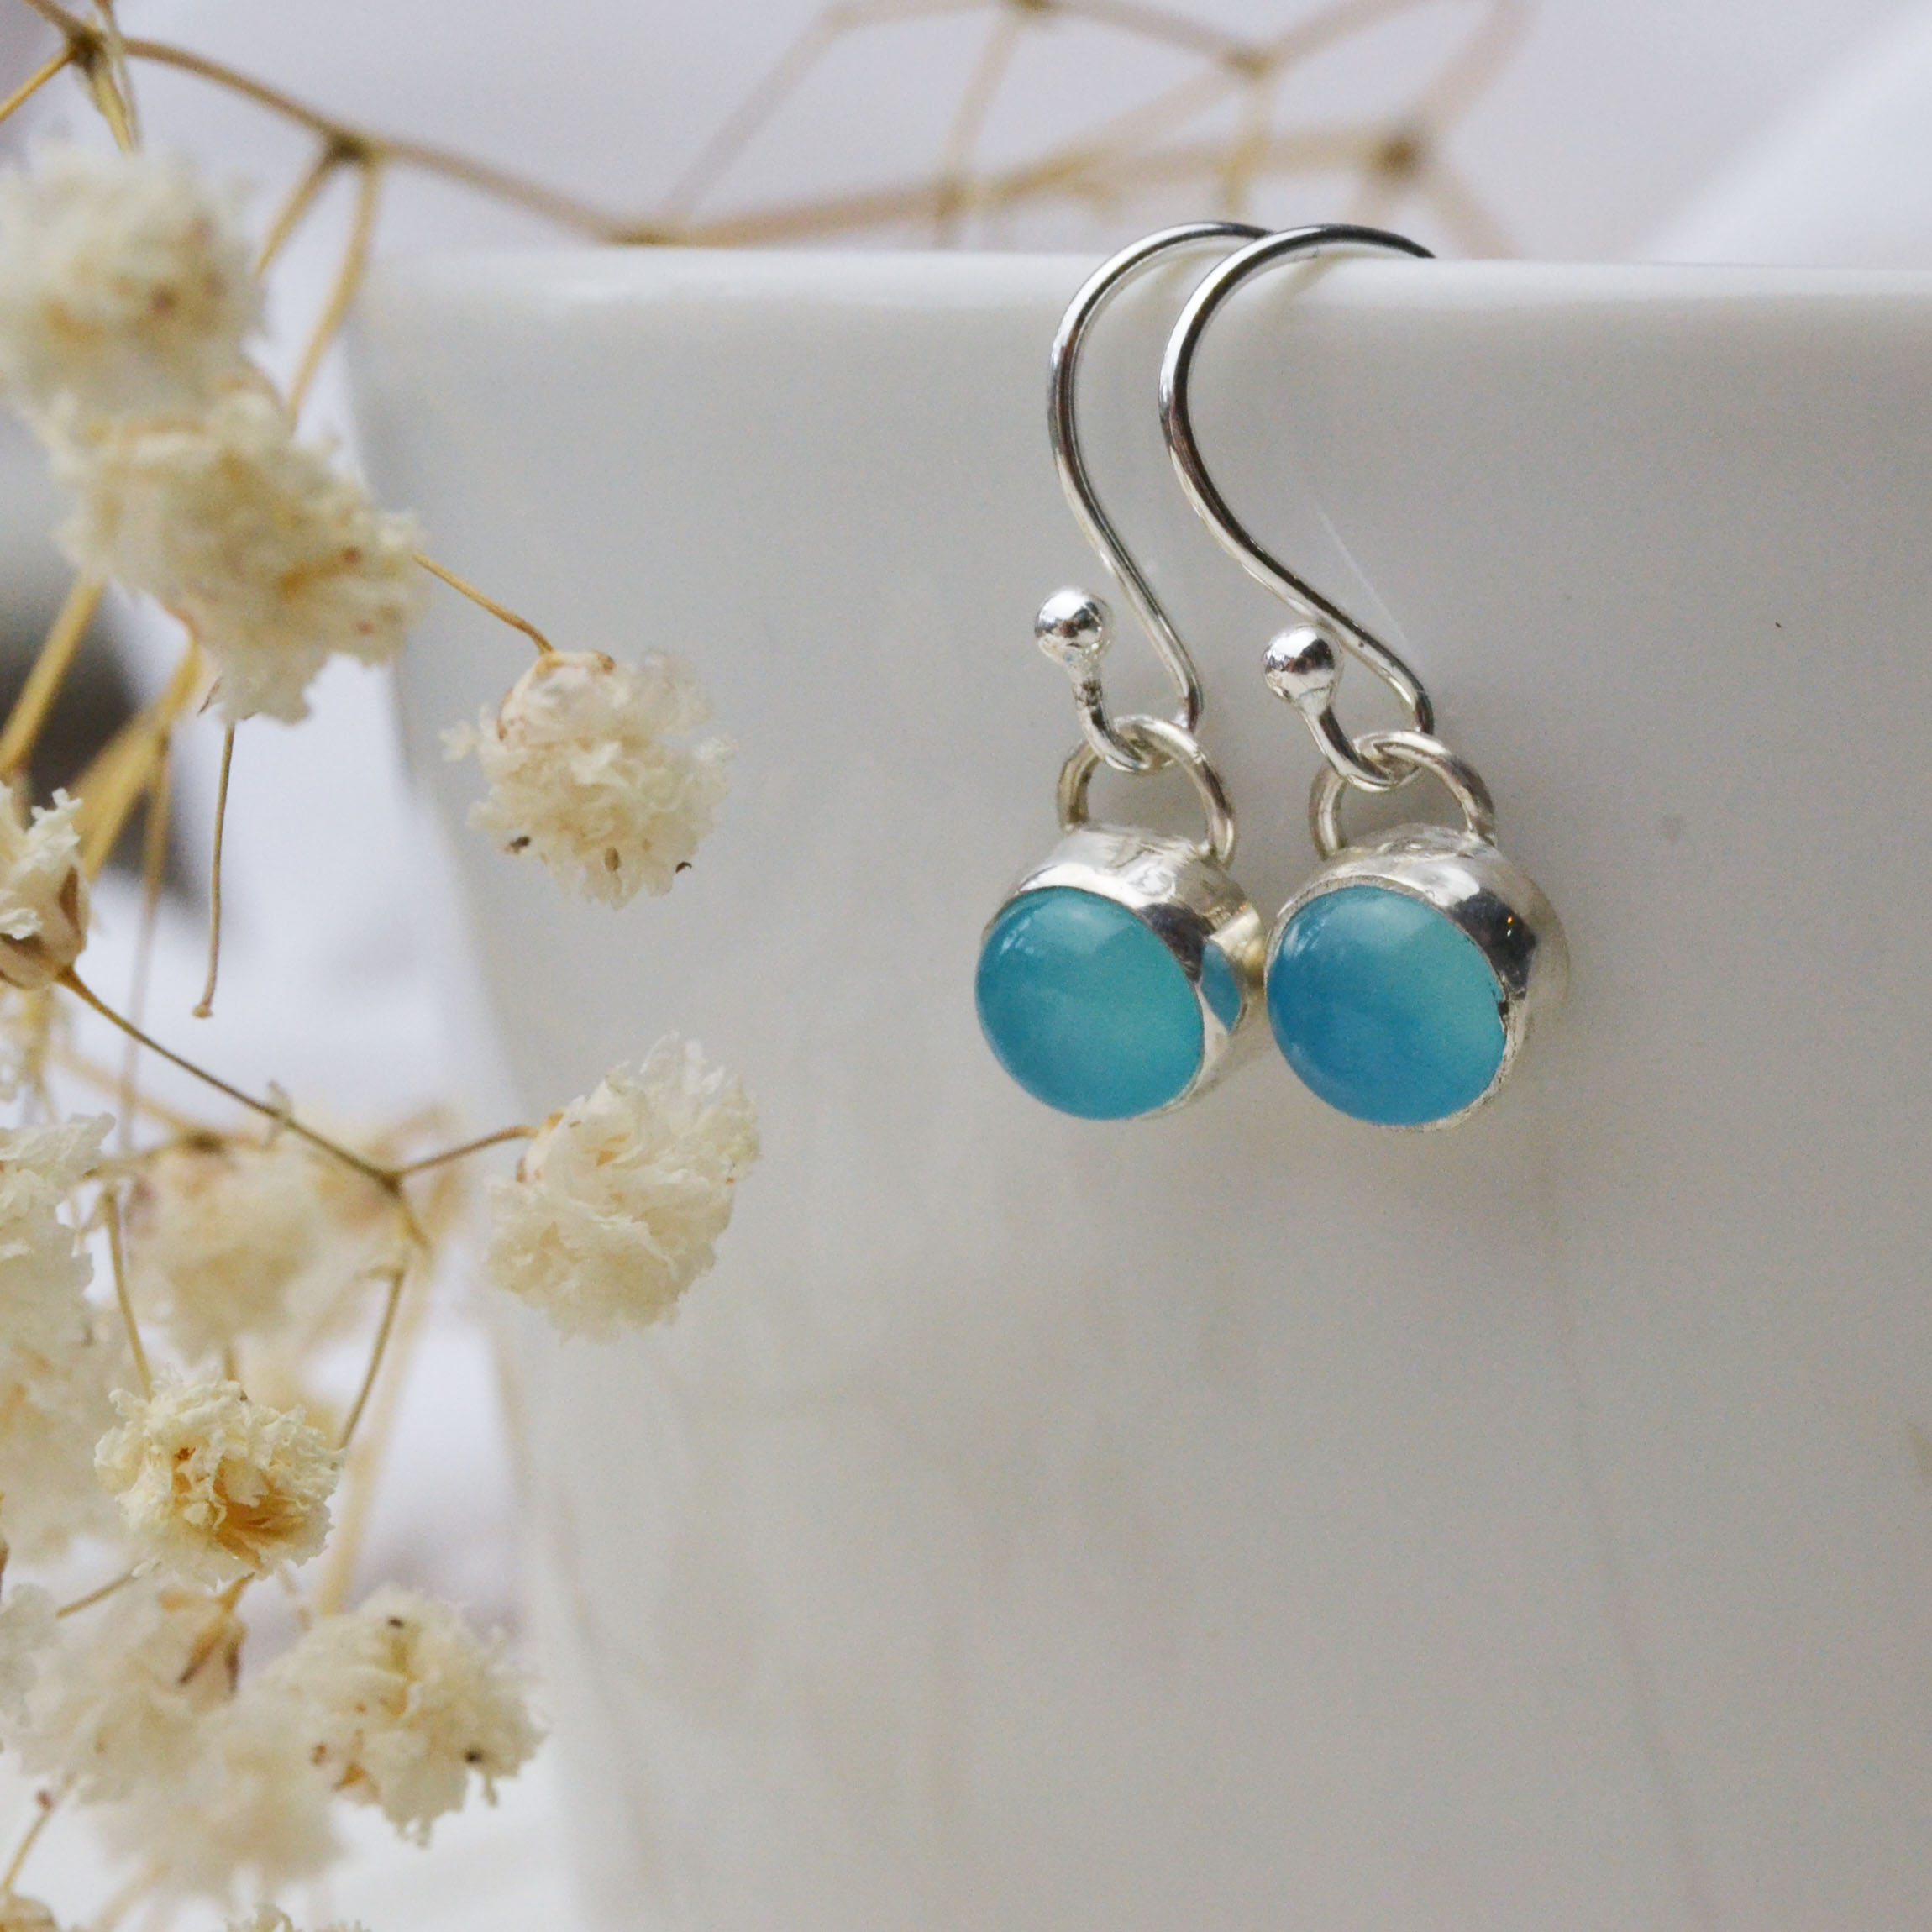 Birthstone/ gemstone dangle earrings in Sea Blue Agate